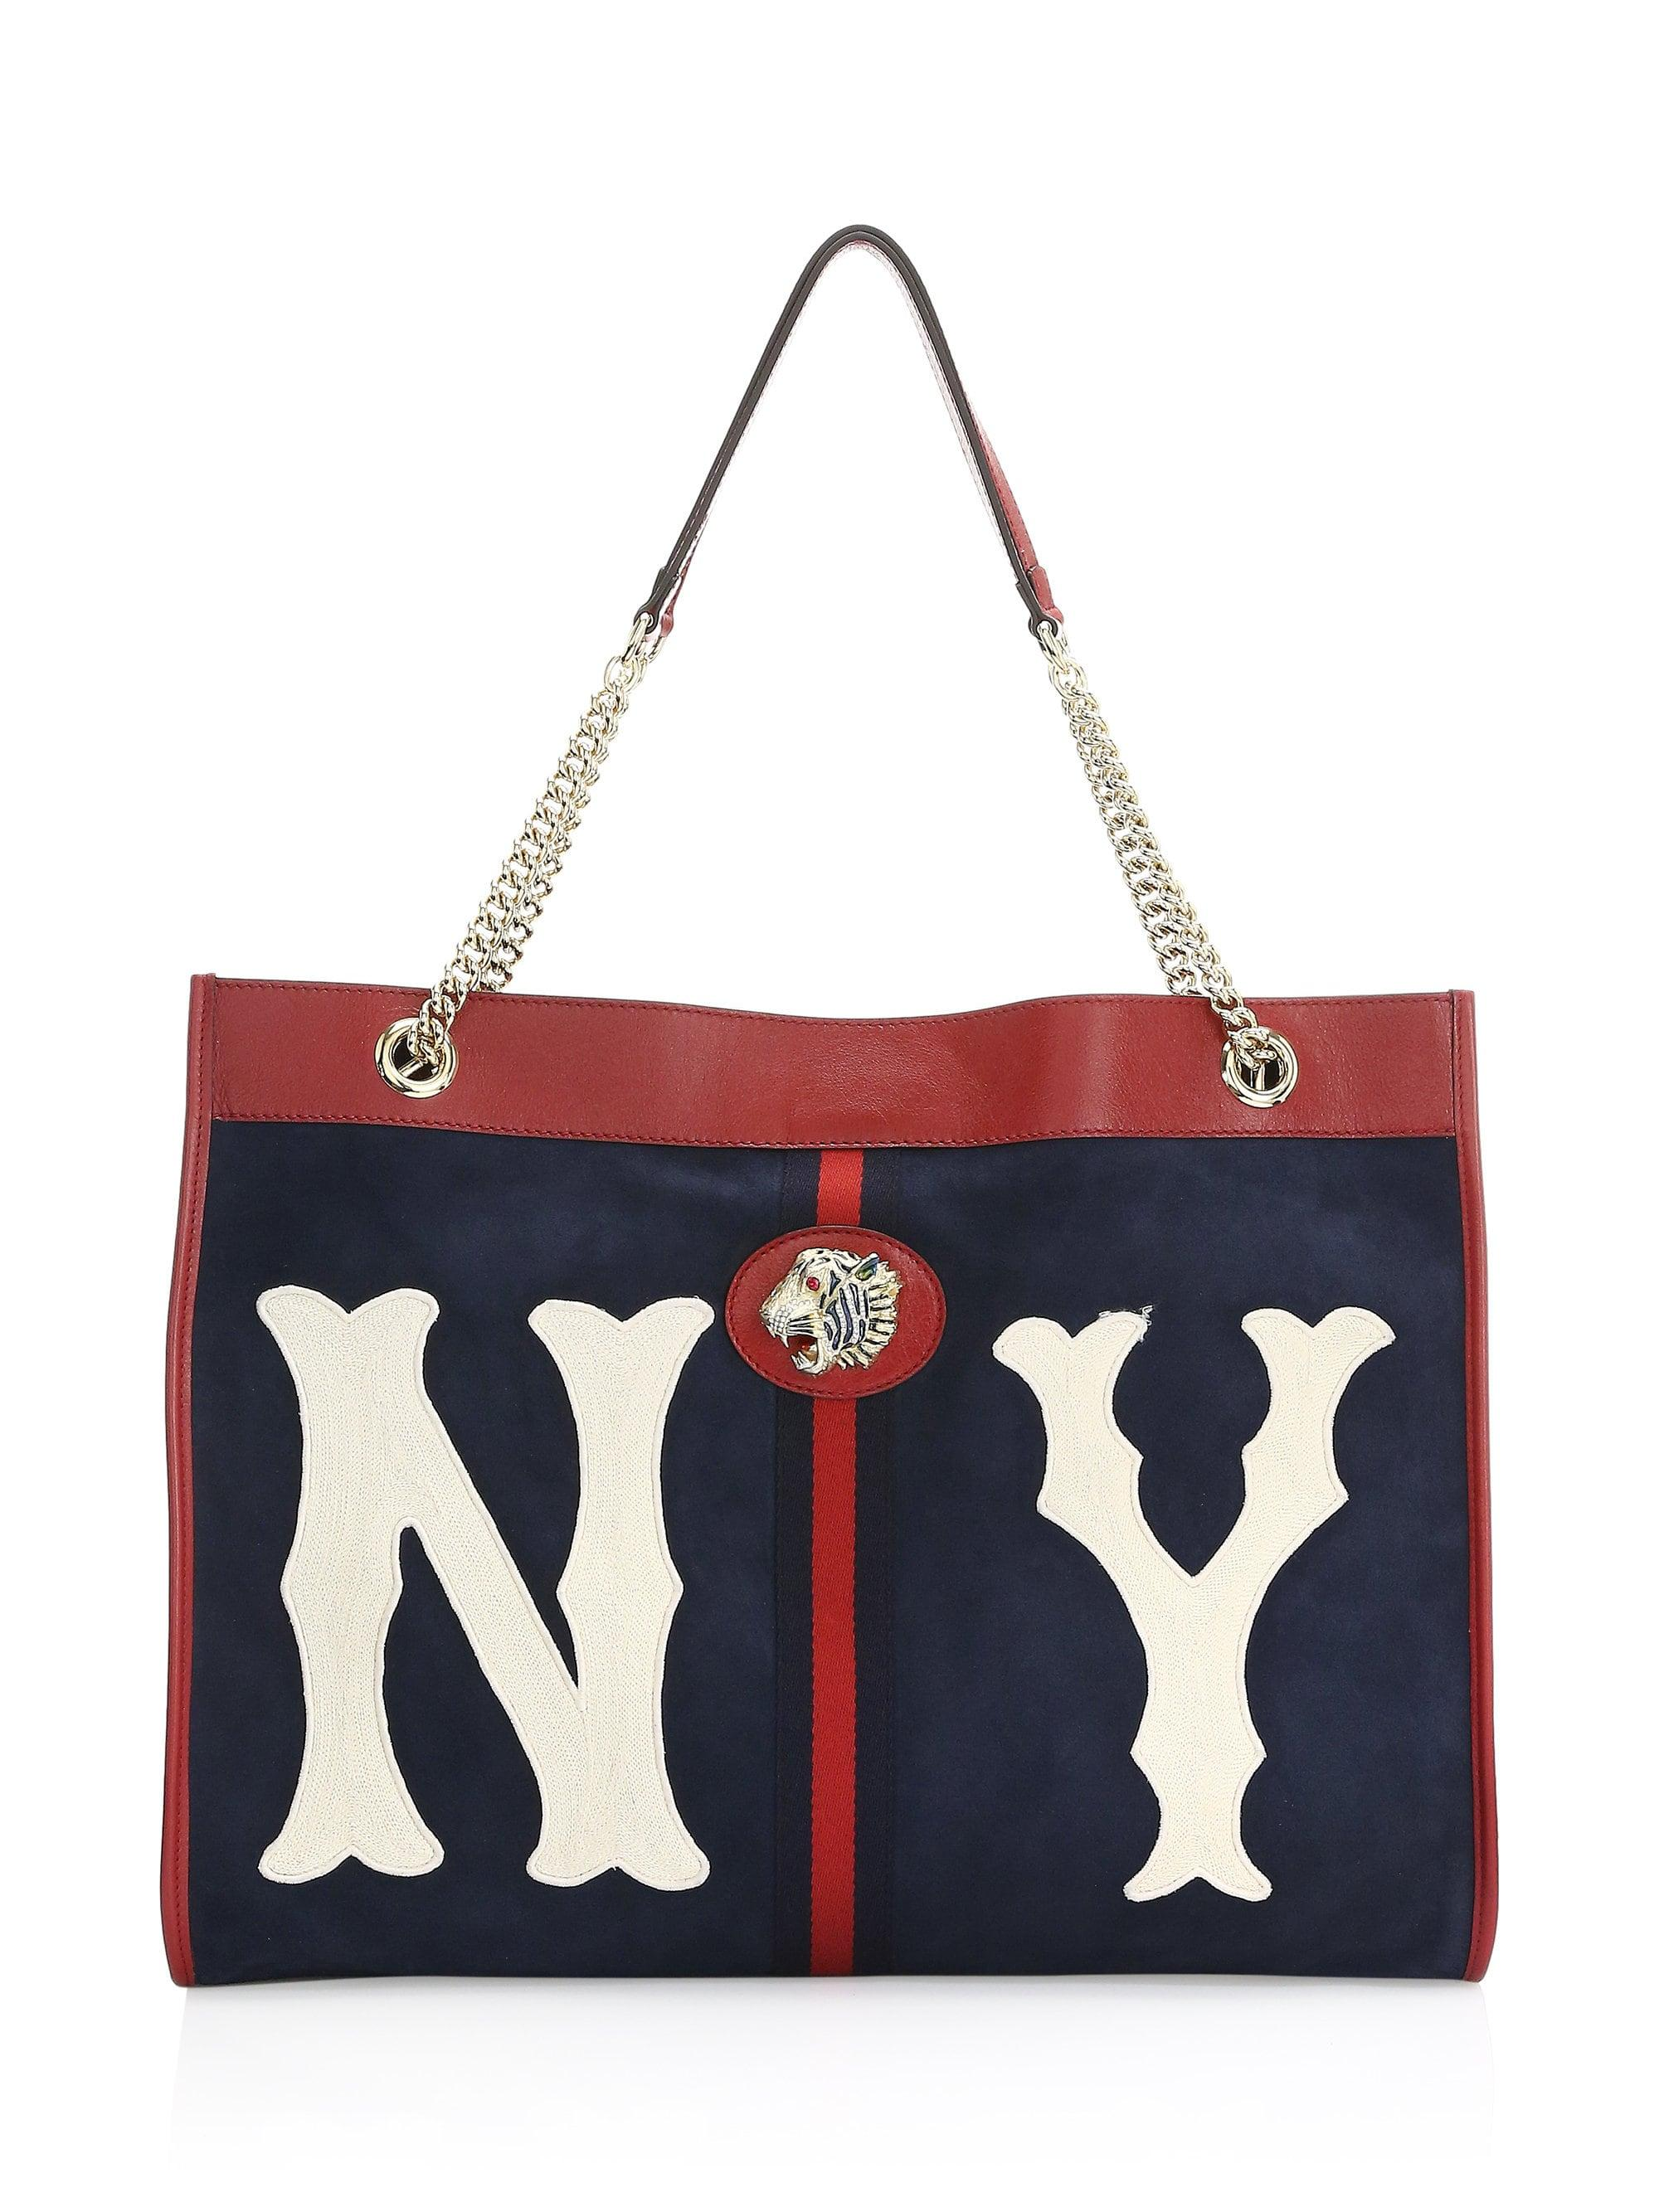 c3b243daf48 Lyst - Gucci Rajah Large Suede Tote Bag With Ny Yankees Mlb Patch in ...